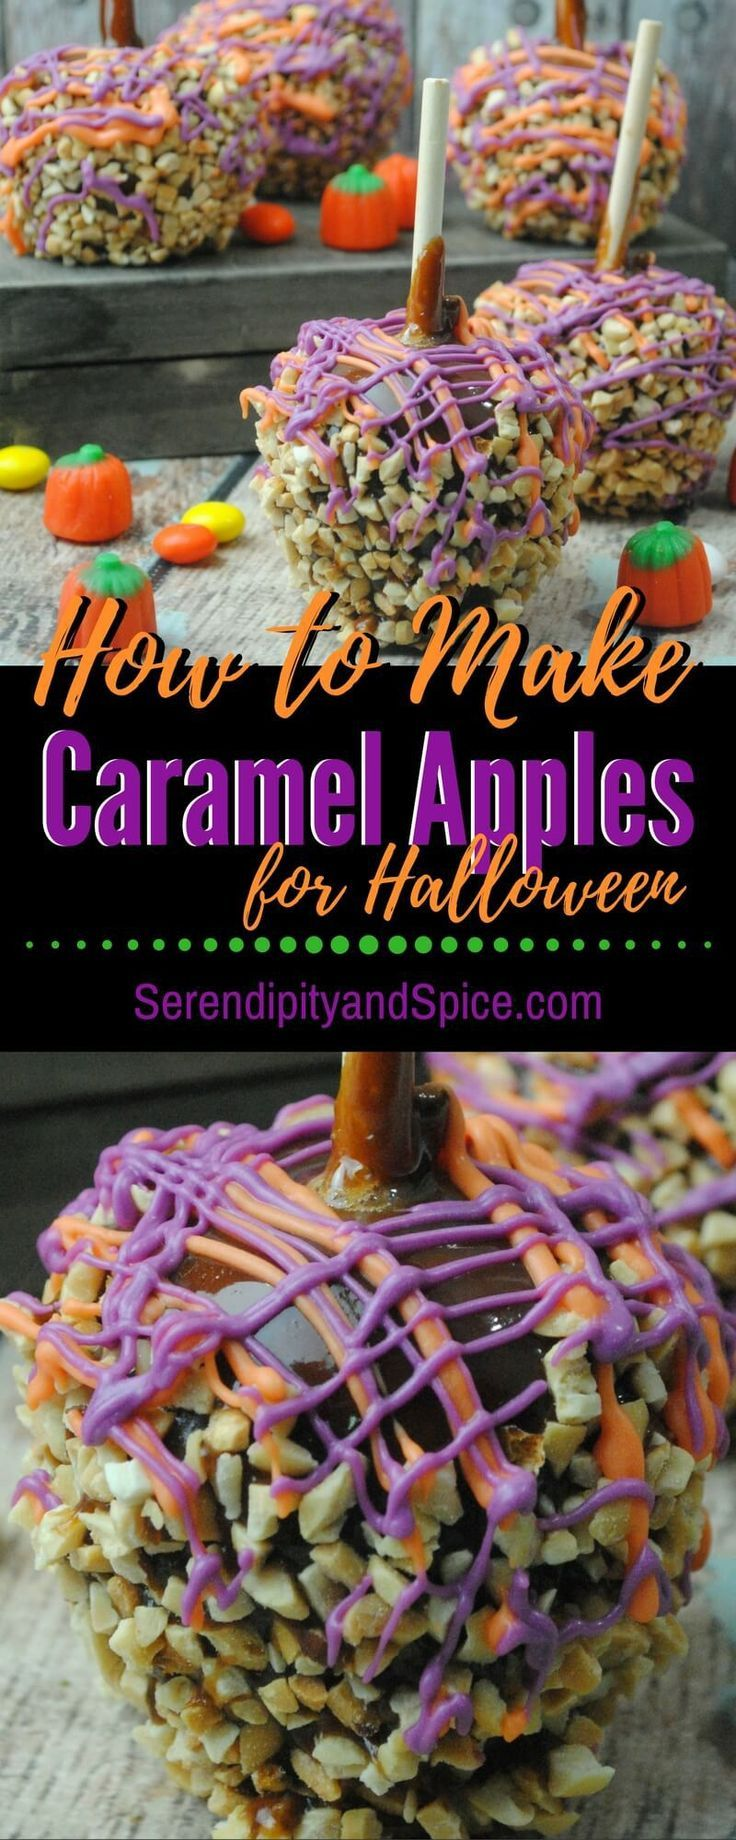 How to Make Caramel Apples for Halloween ~ these make the perfect treat for school bake sales, halloween parties, and just for fun.  Plus, they're so easy to make...cook with kids....sweet candy apples. http://serendipityandspice.com